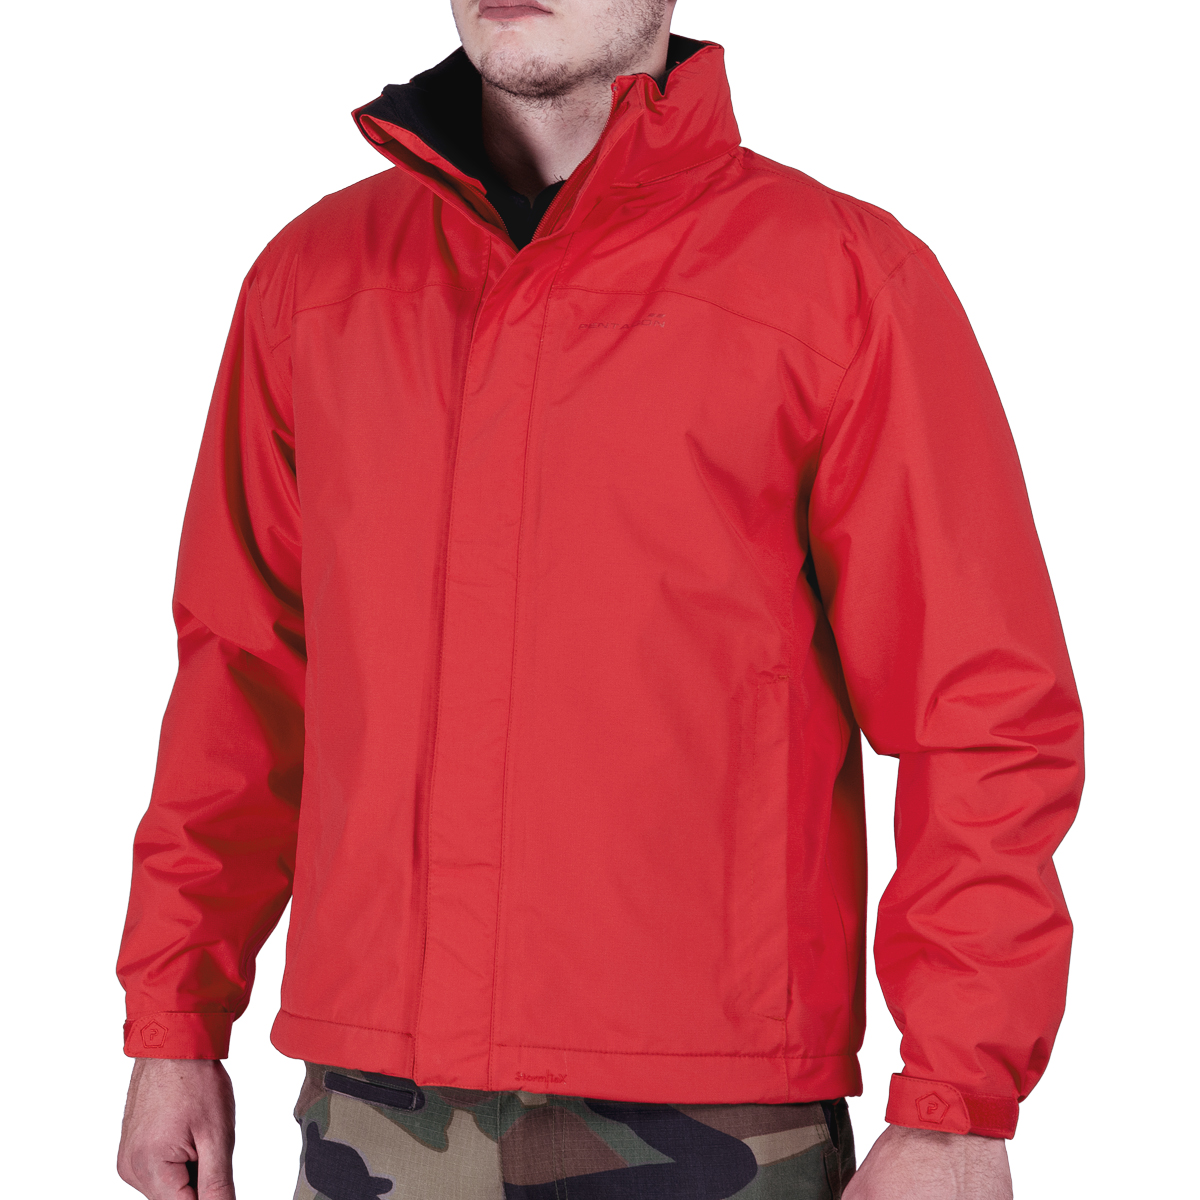 Pentagon Atlantic Plus Rain Jacket Warm Mens Skiing Fleece Nylon ...